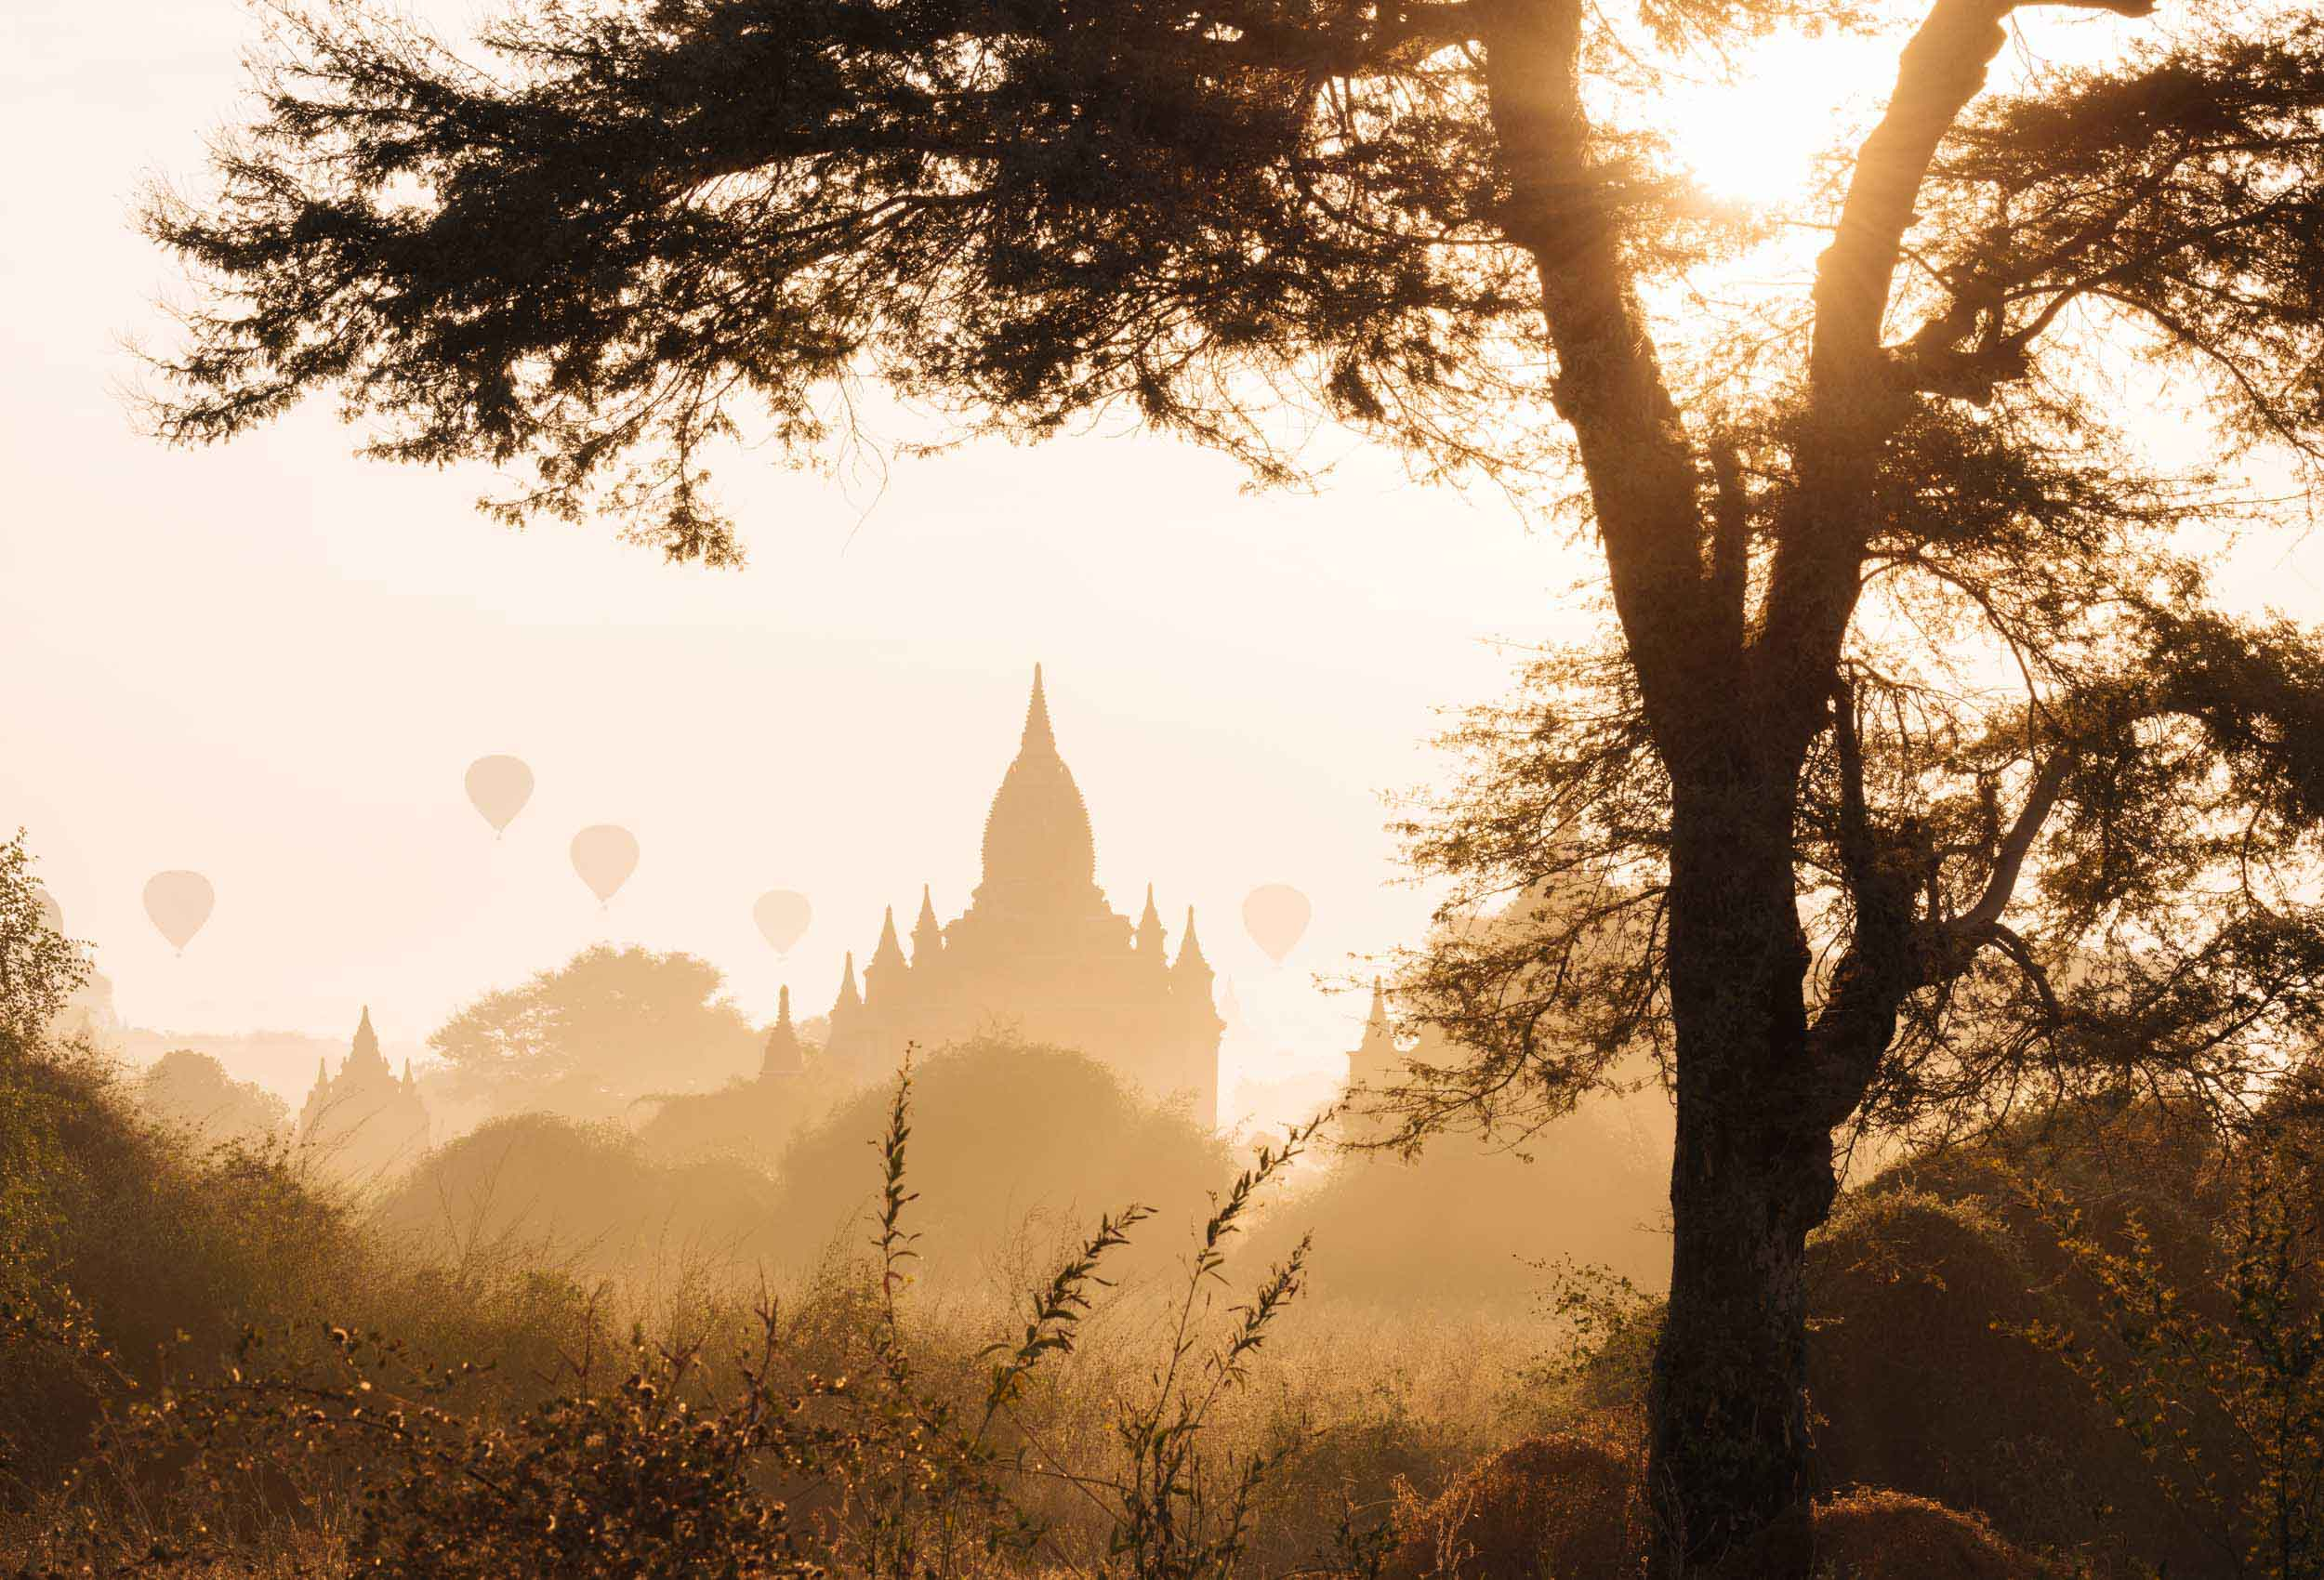 temples-dawn-travel-photographer-bagan-myanmar-asia